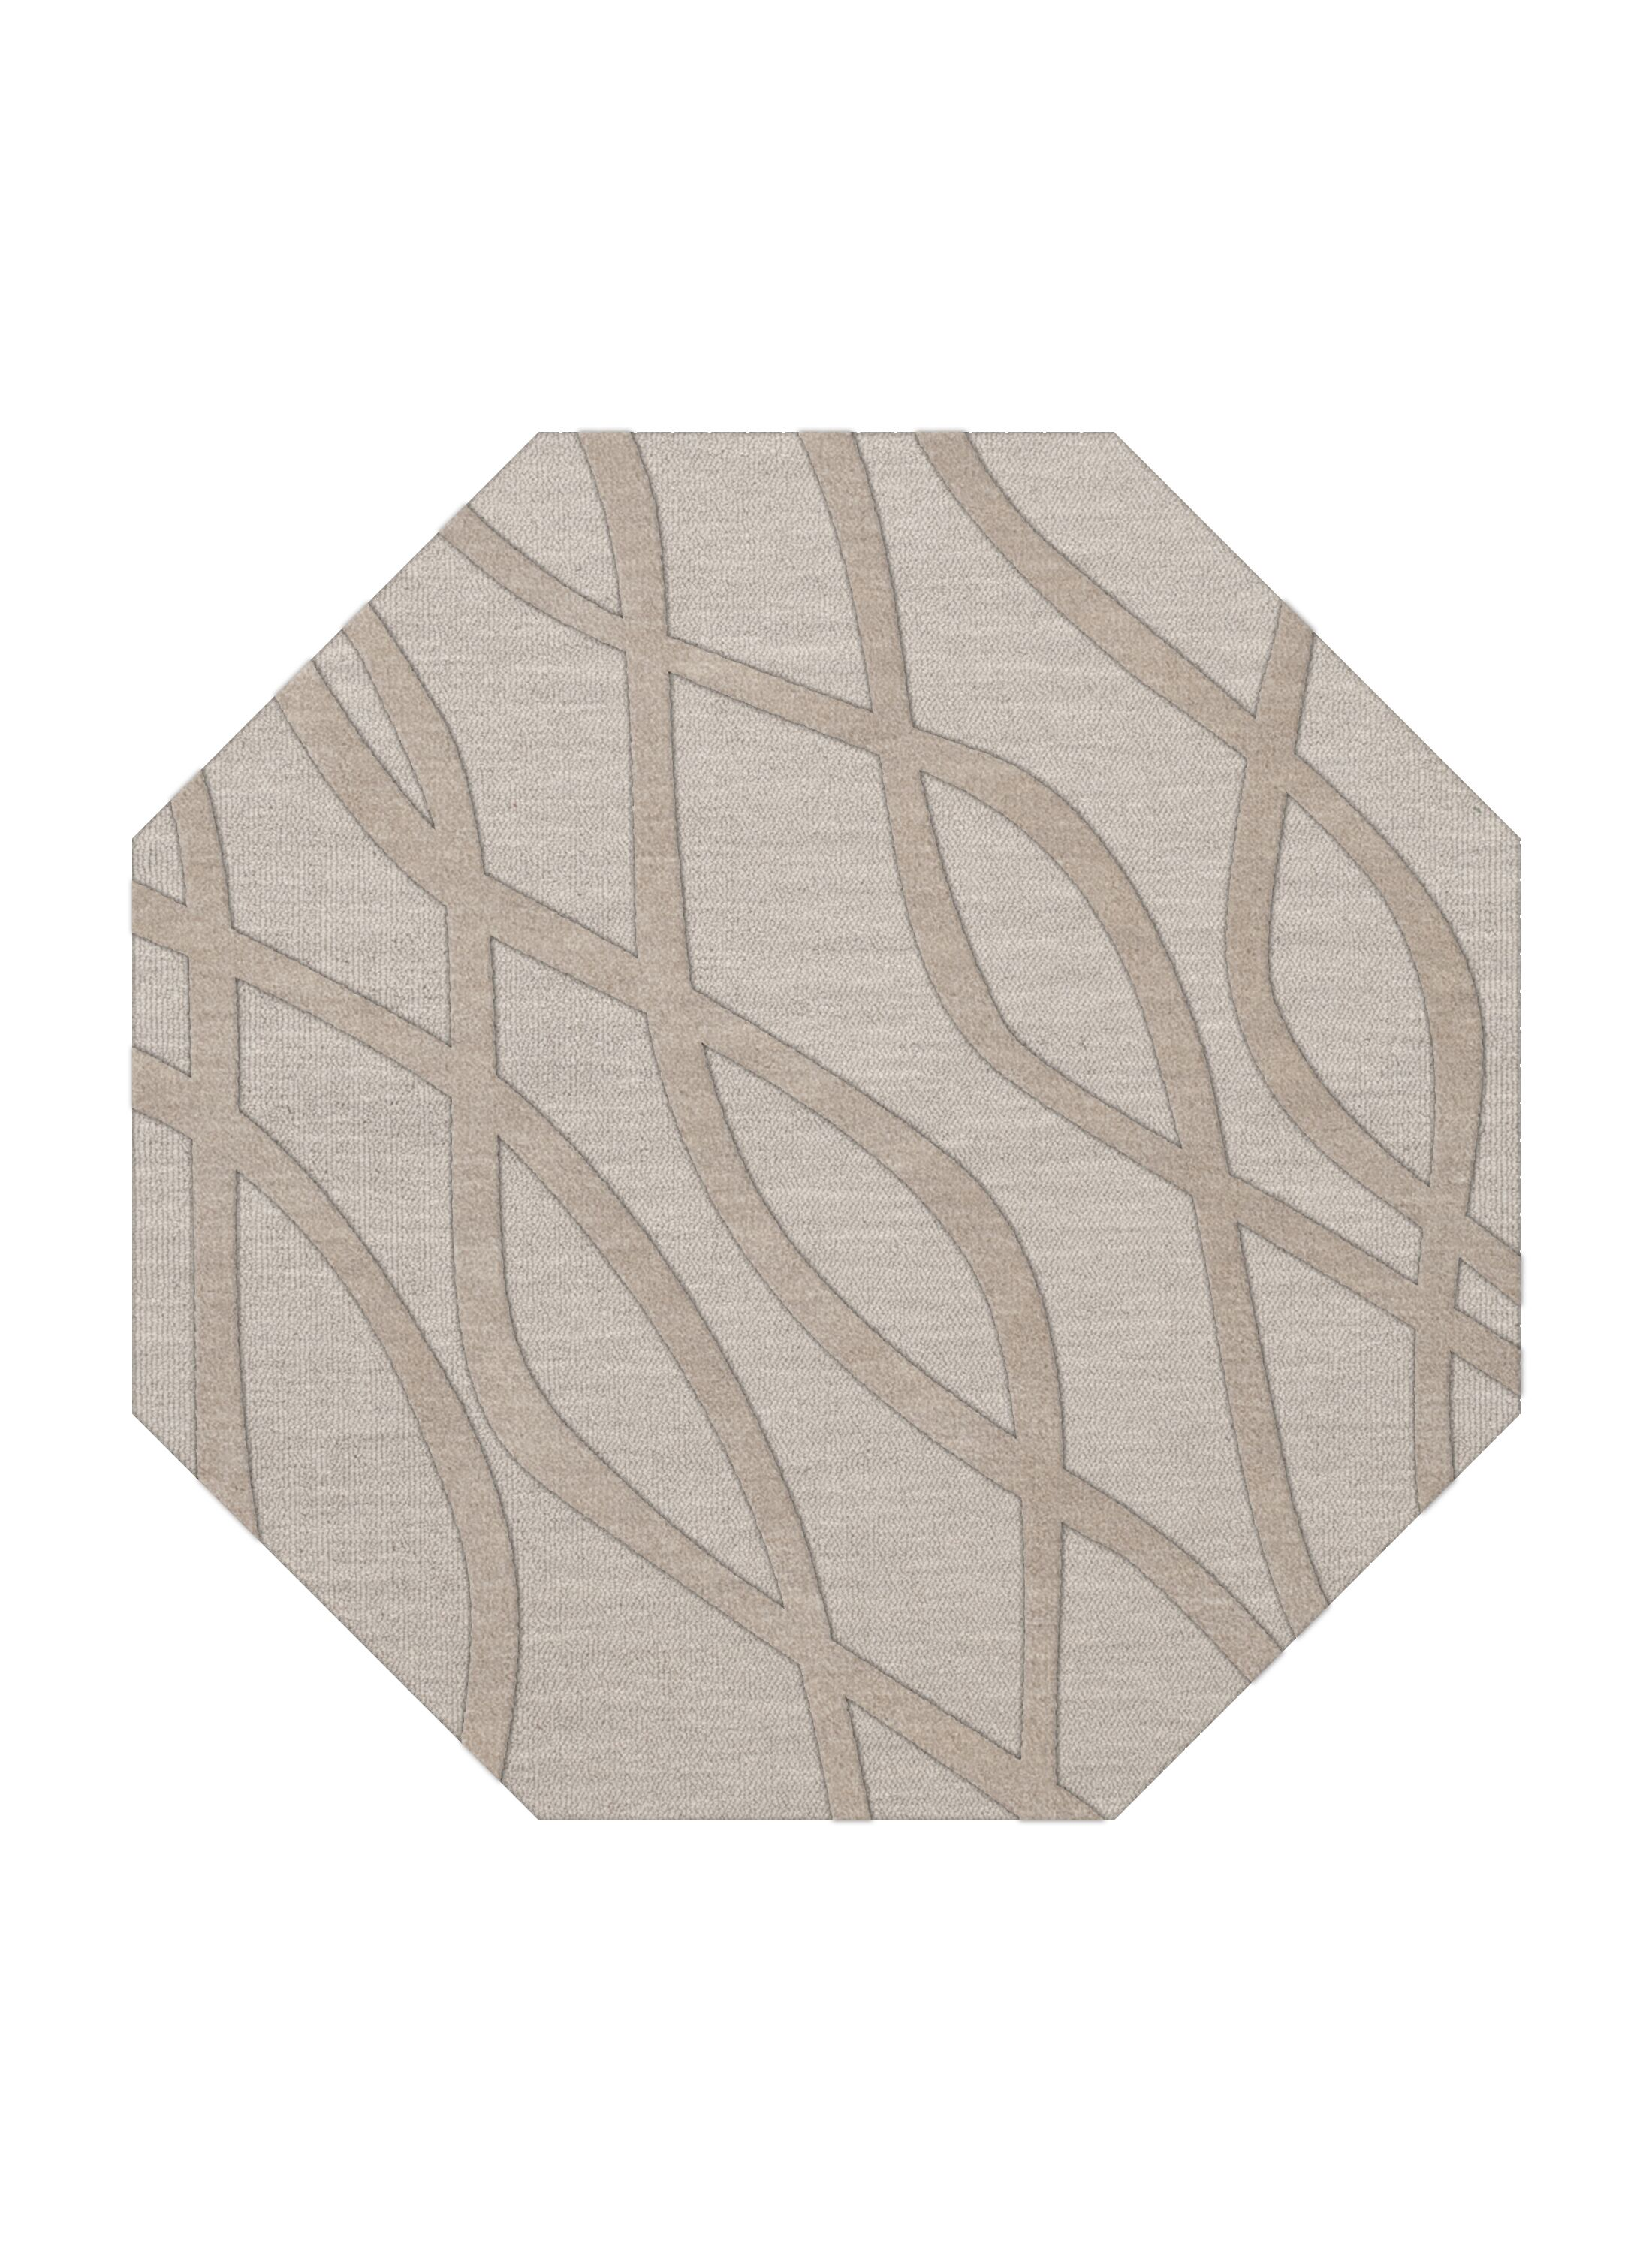 Dover Tufted Wool Putty Area Rug Rug Size: Octagon 6'